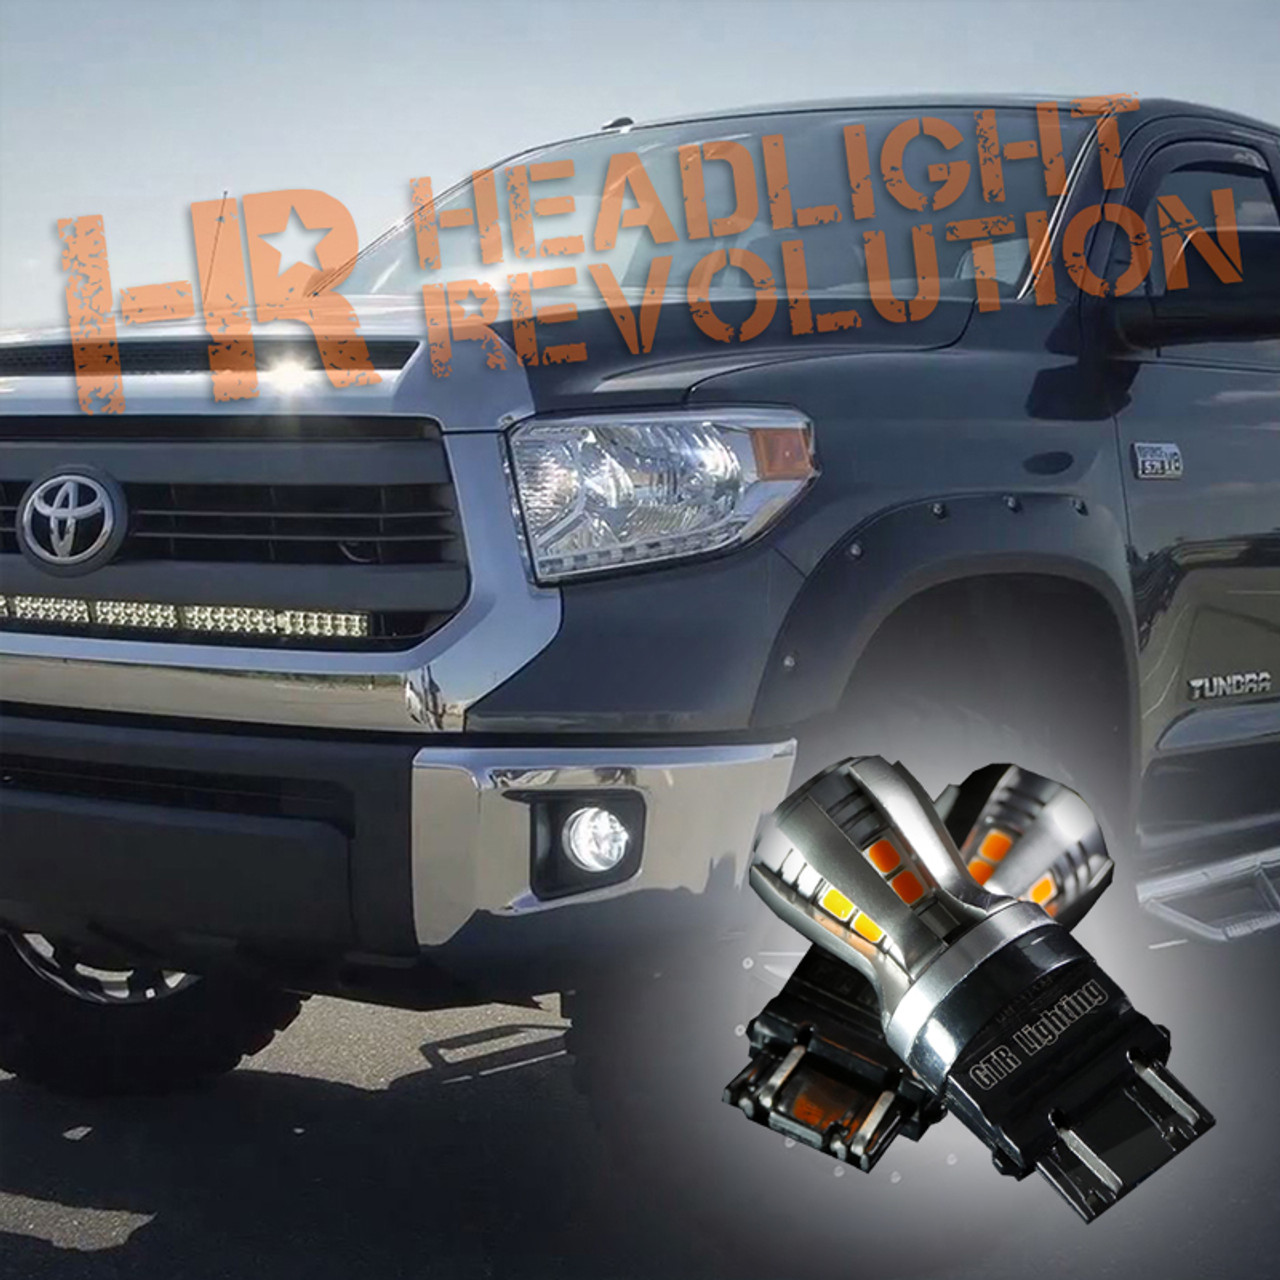 2014 tundra headlight wiring diagram auto wiring diagram g8 tundra projector headlights 2014 2017 toyota tundra led front blinkers kit headlight revolution headlamp wiring 2014 tundra headlight wiring diagram auto